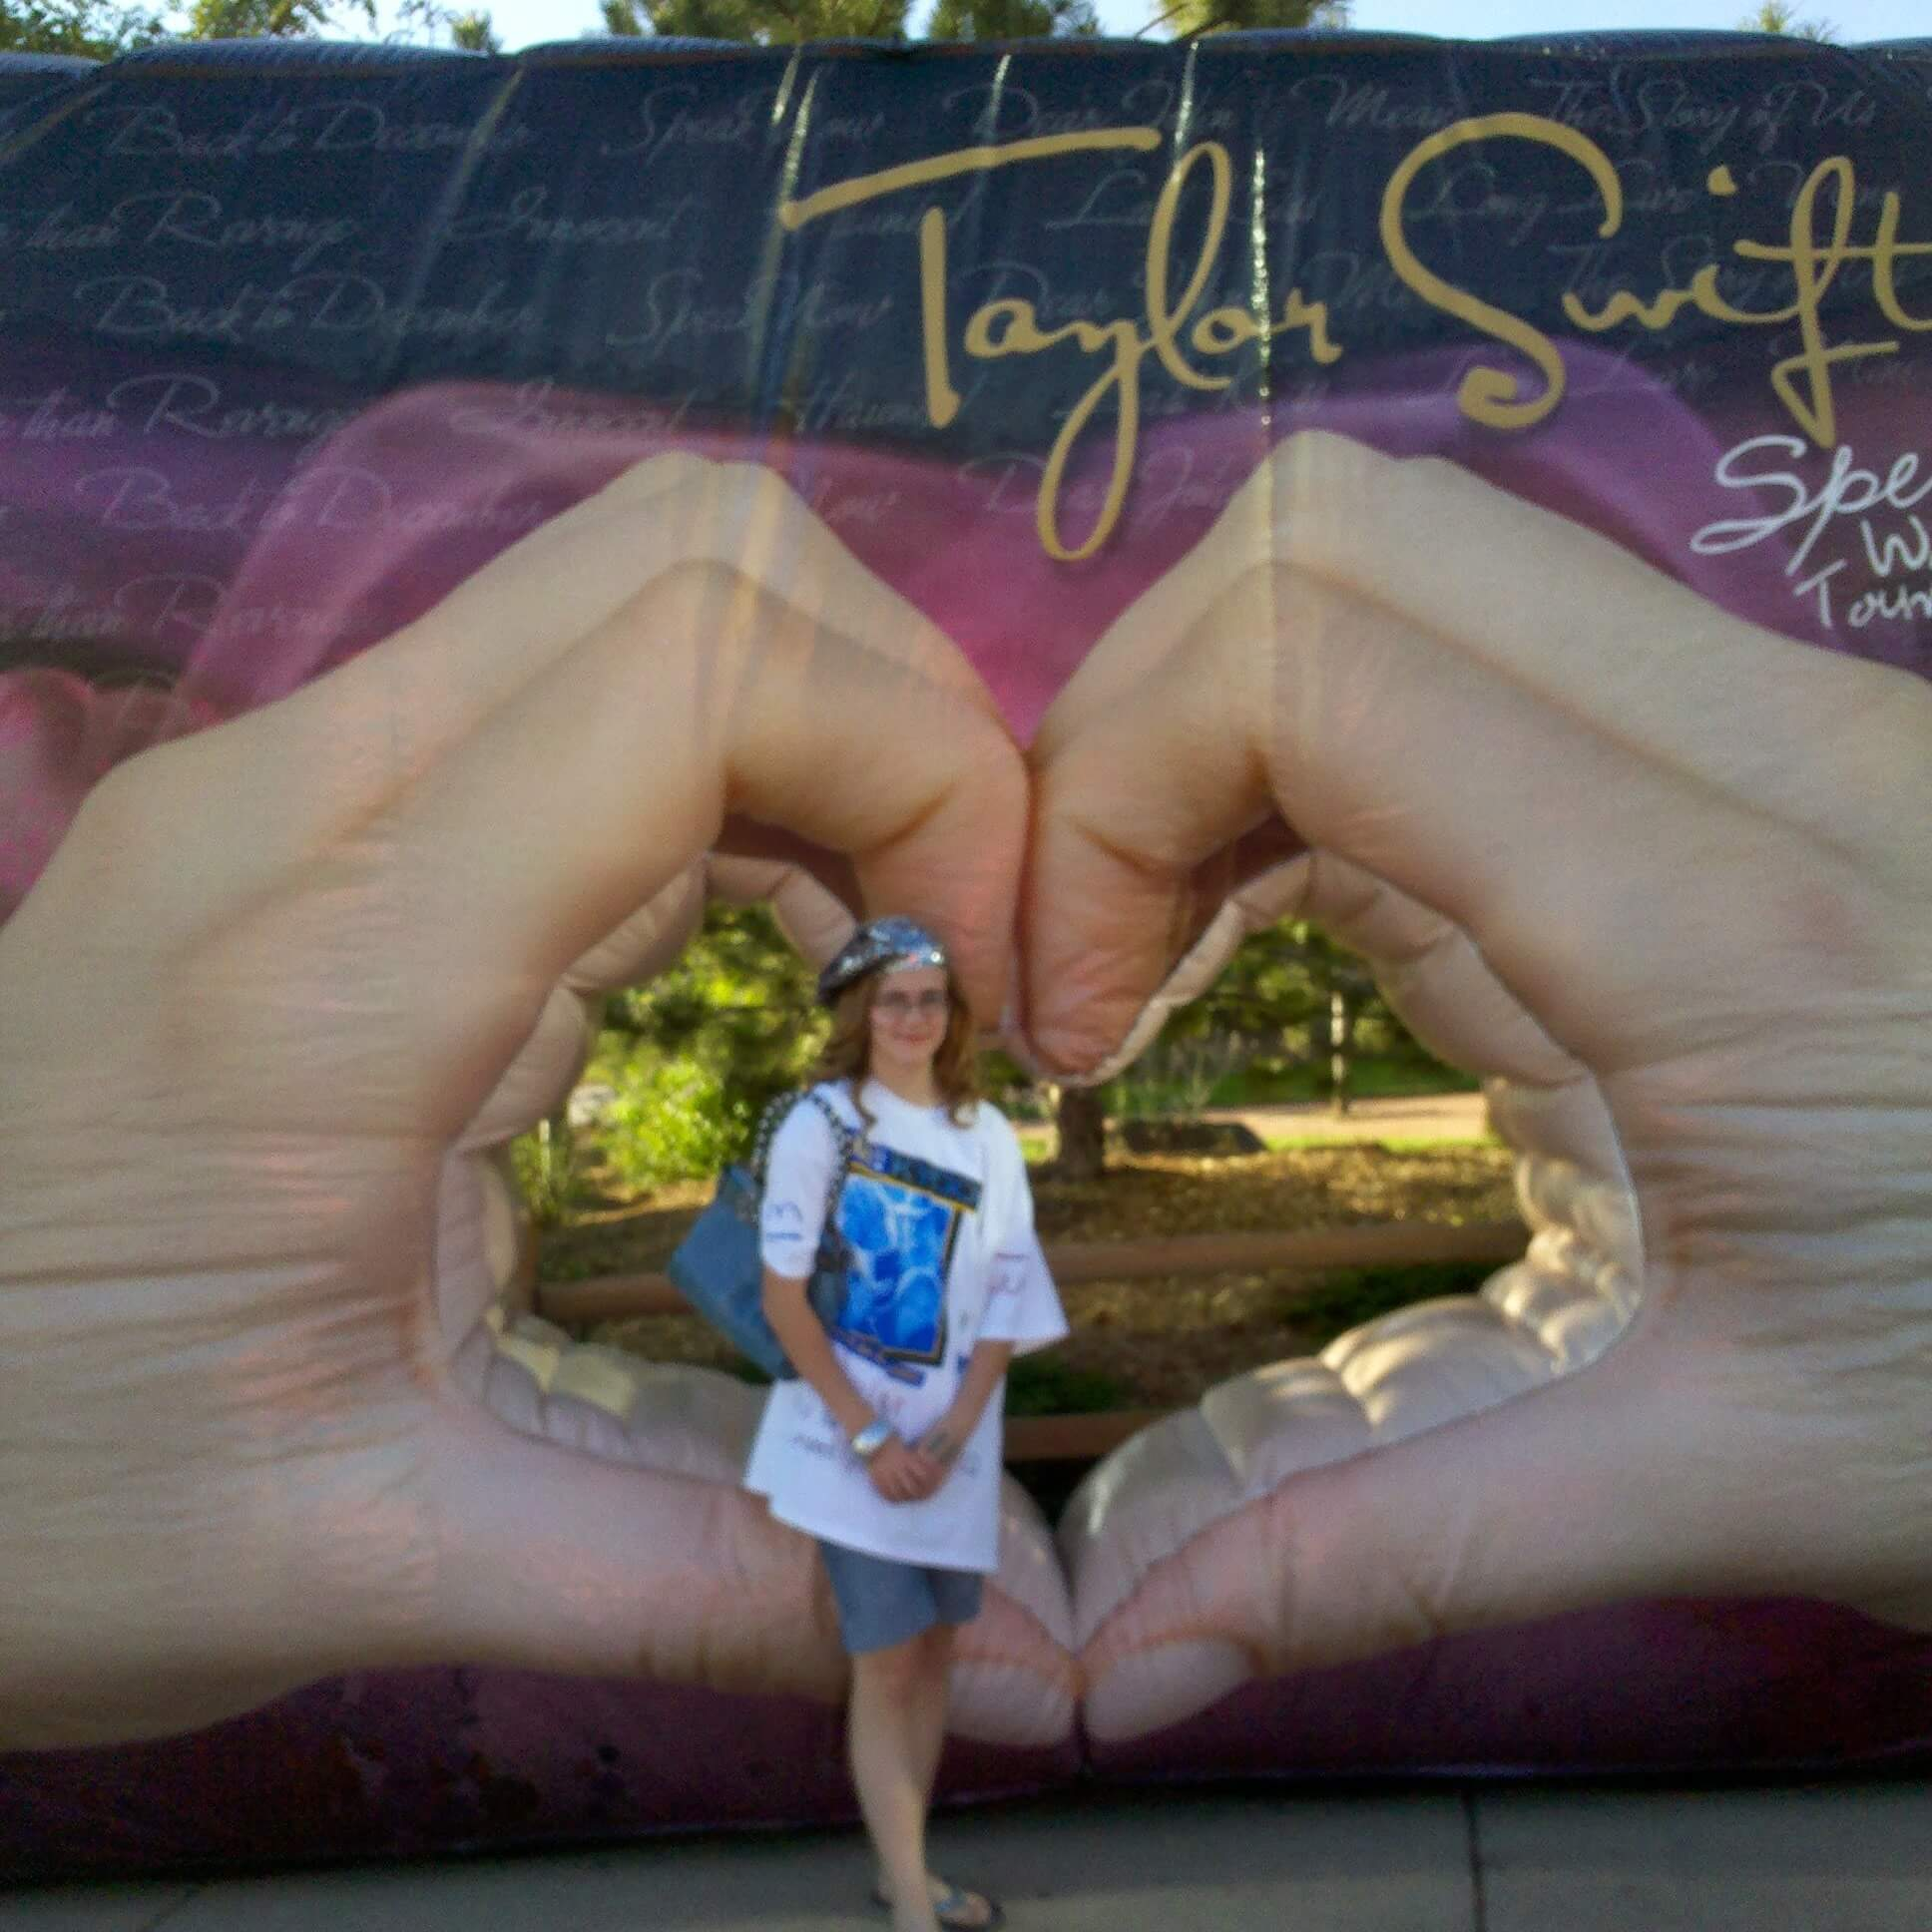 Taylor Swift Concerts Throughout The Years The Denver Ear